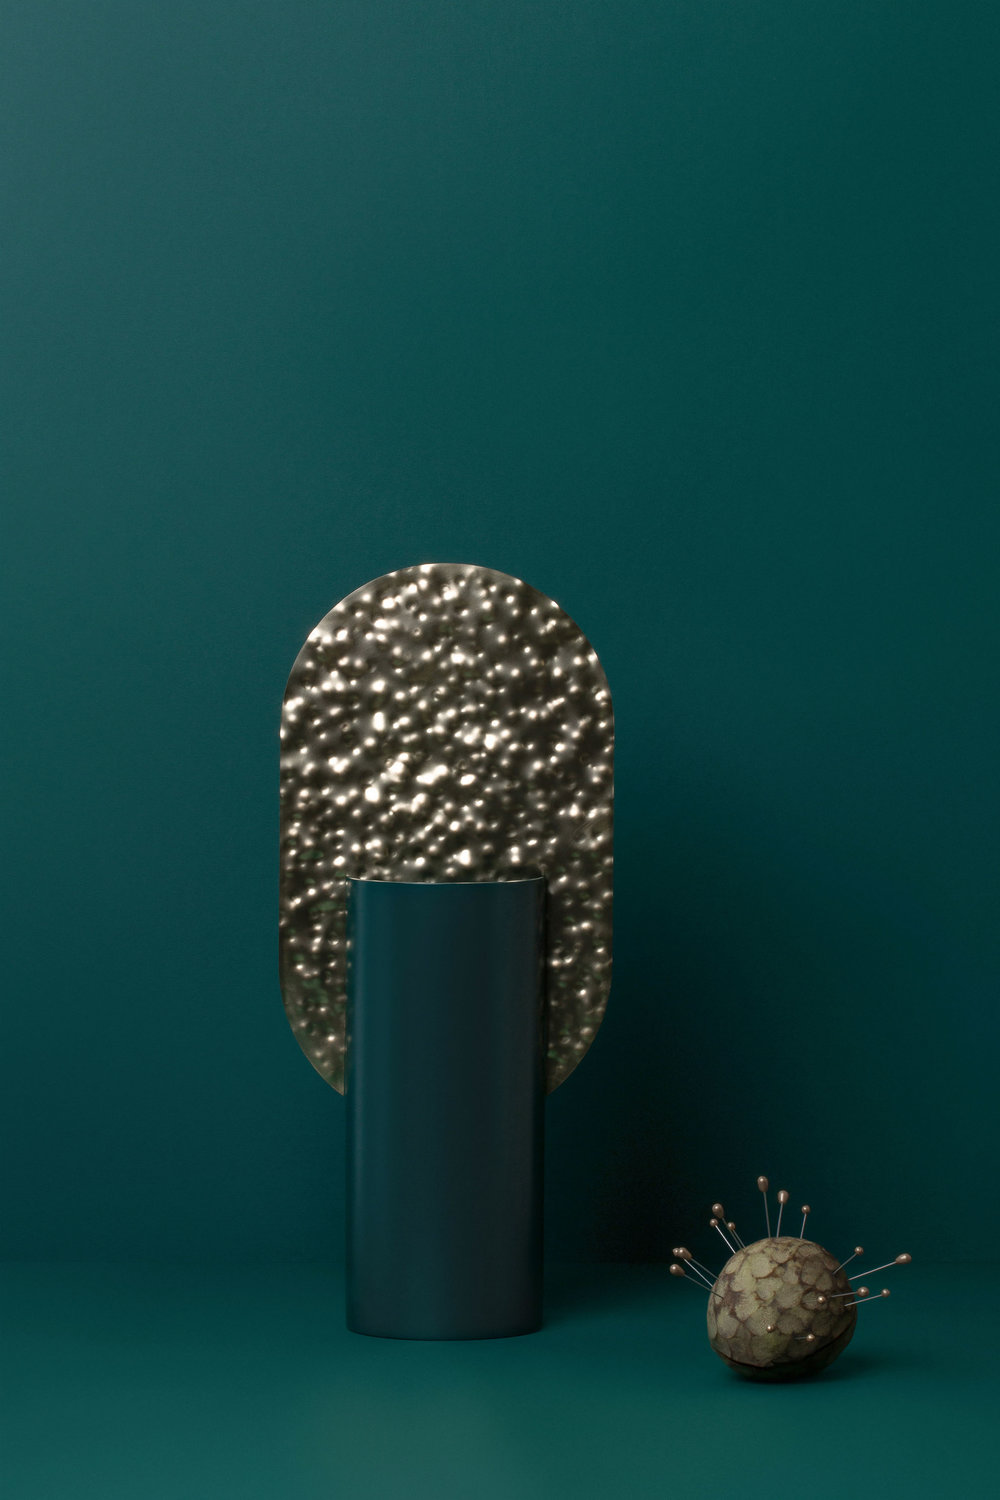 SCULPTURAL - Even an empty vase looks like a small art object in your house.